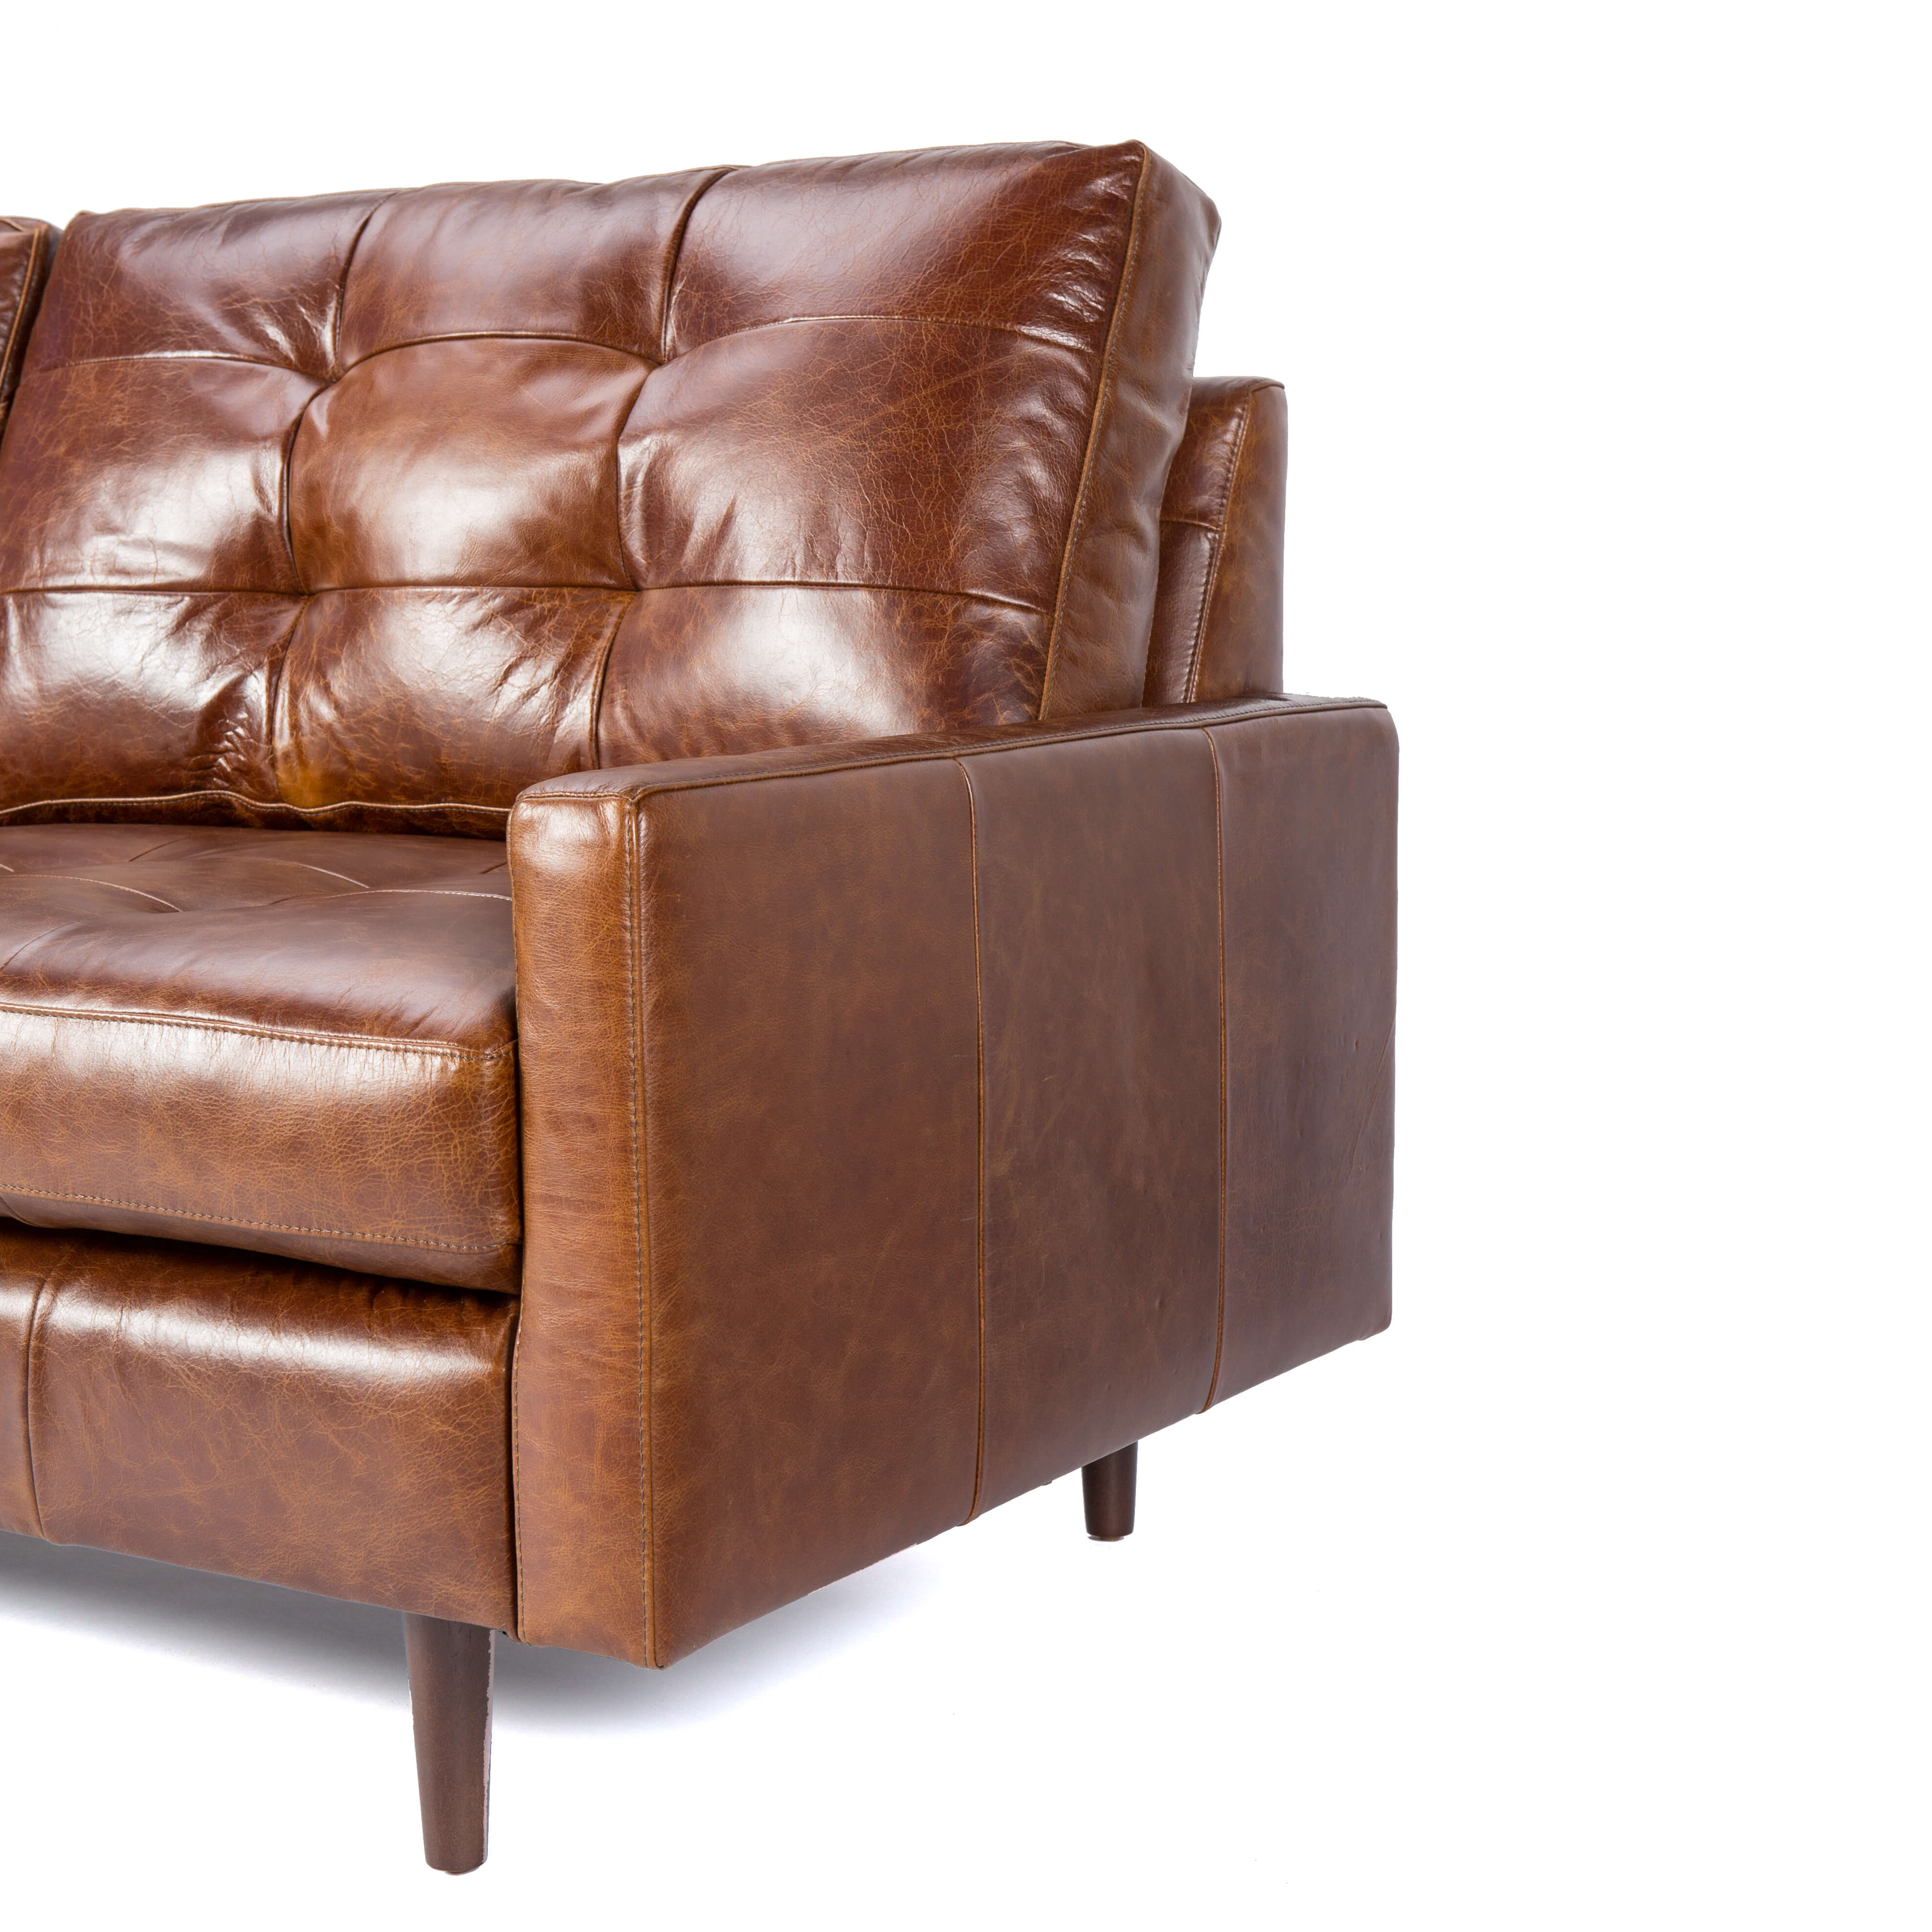 Andrew Leather Sofa Chairs For 2019 Leather Sofa With Tufted Back Cushion – Andrew – Zillo + Hutch (Gallery 5 of 20)